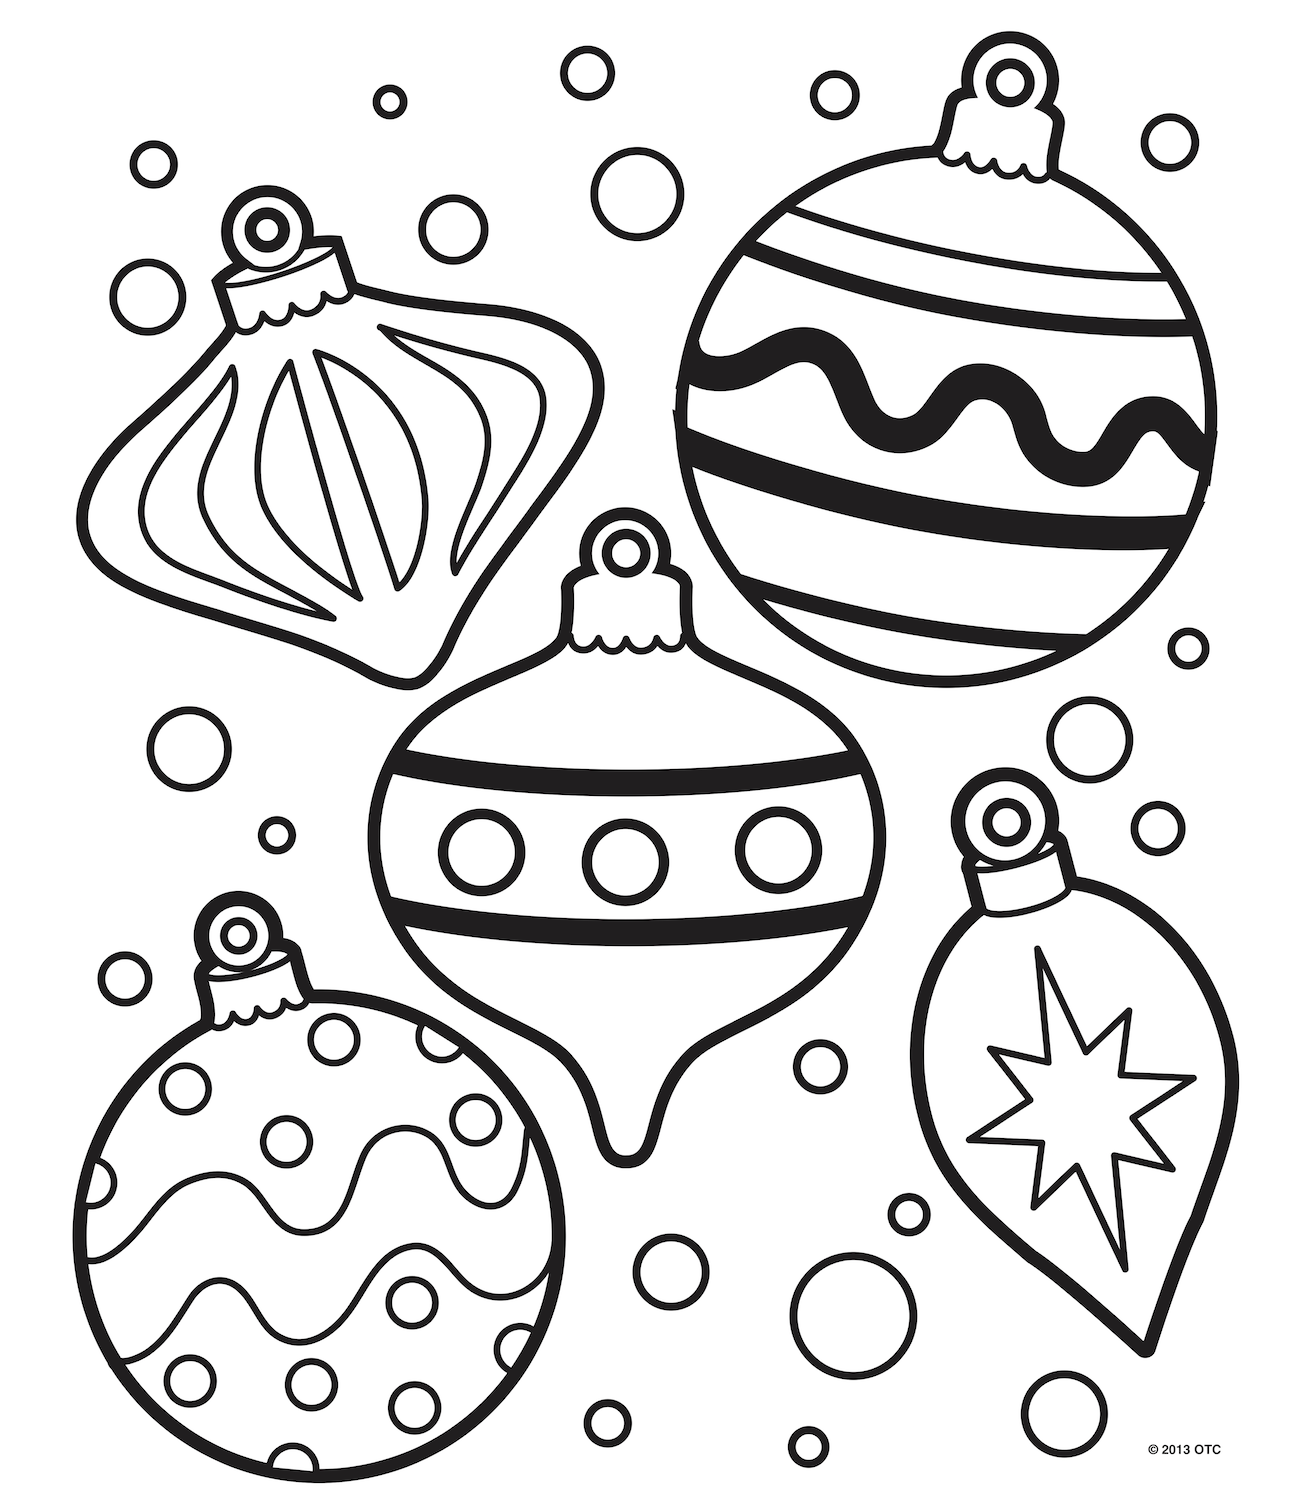 Colour And Design Your Own Christmas Ornaments Printables In The Playroom Christmas Ornament Template Christmas Ornament Coloring Page Printable Christmas Coloring Pages